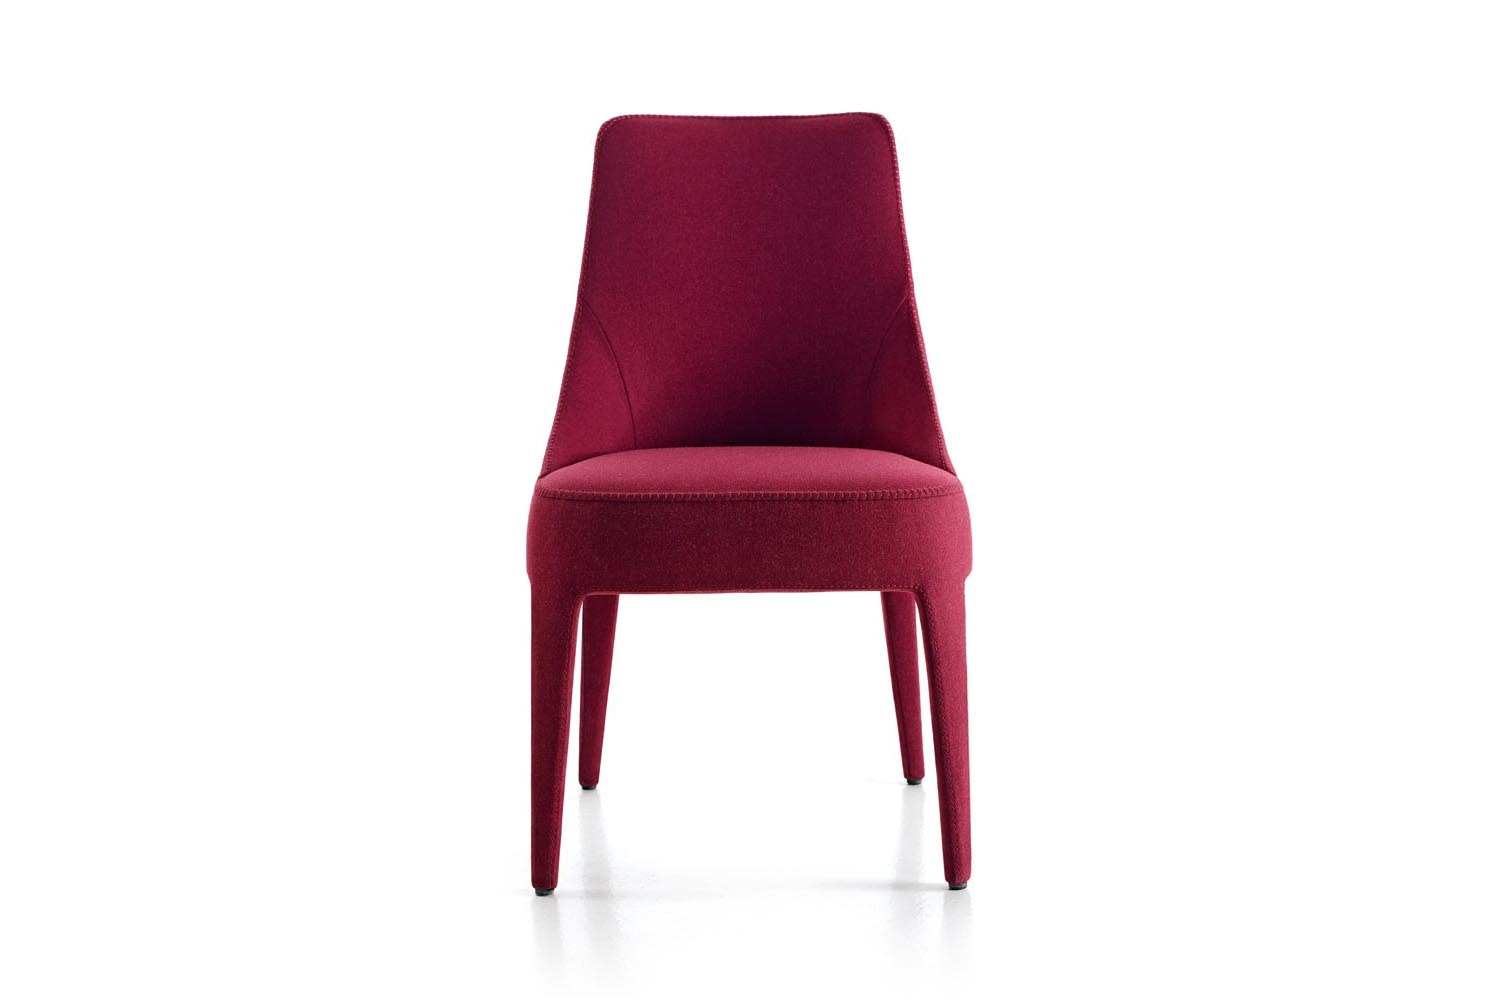 Home Design Stores Adelaide Febo Chair By Antonio Citterio For Maxalto Space Furniture